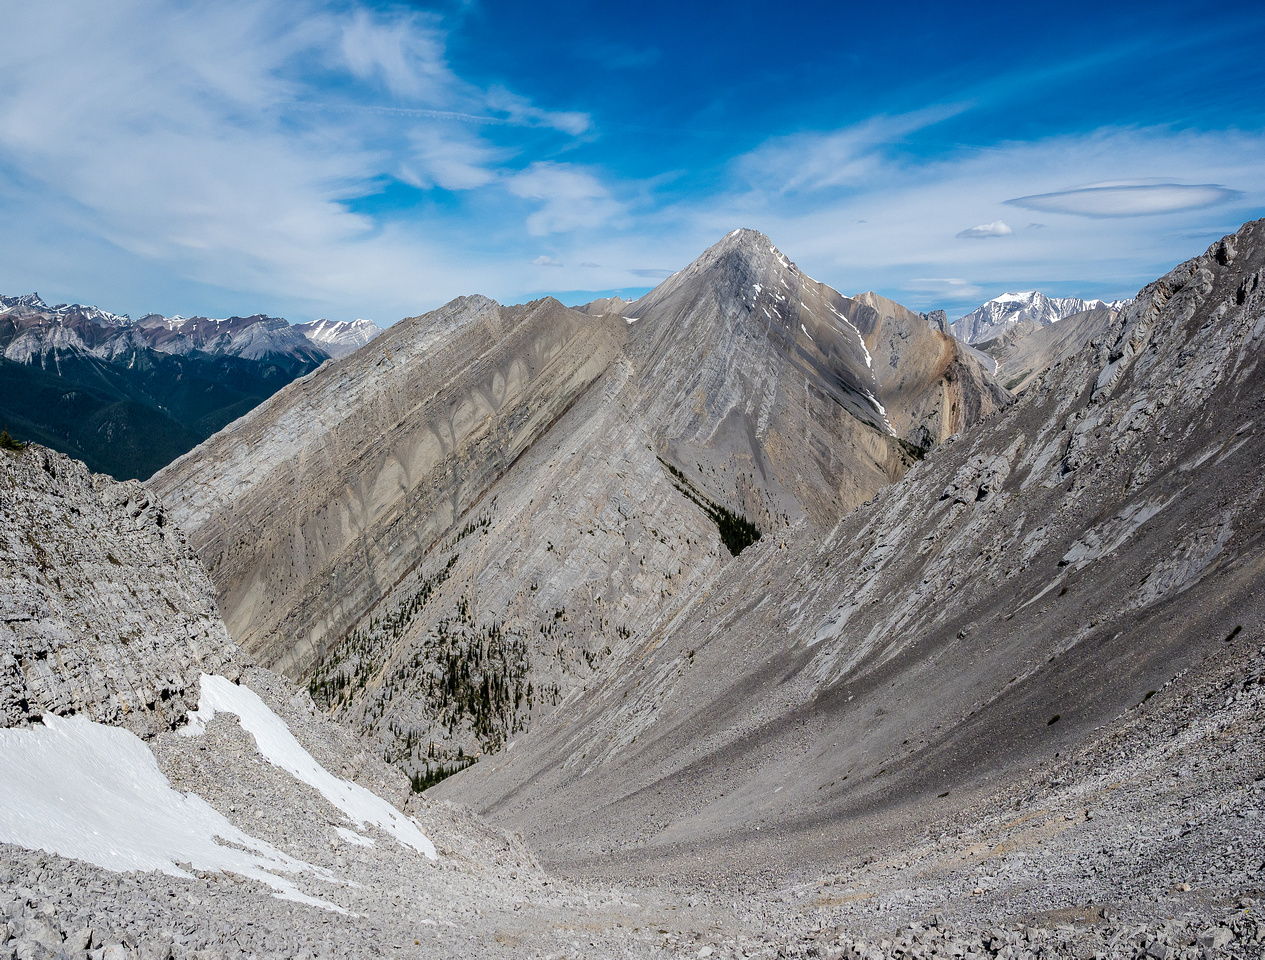 The difficult NW ridge running up to the right. Once you're committed to the ridge, you're pretty much stuck on it